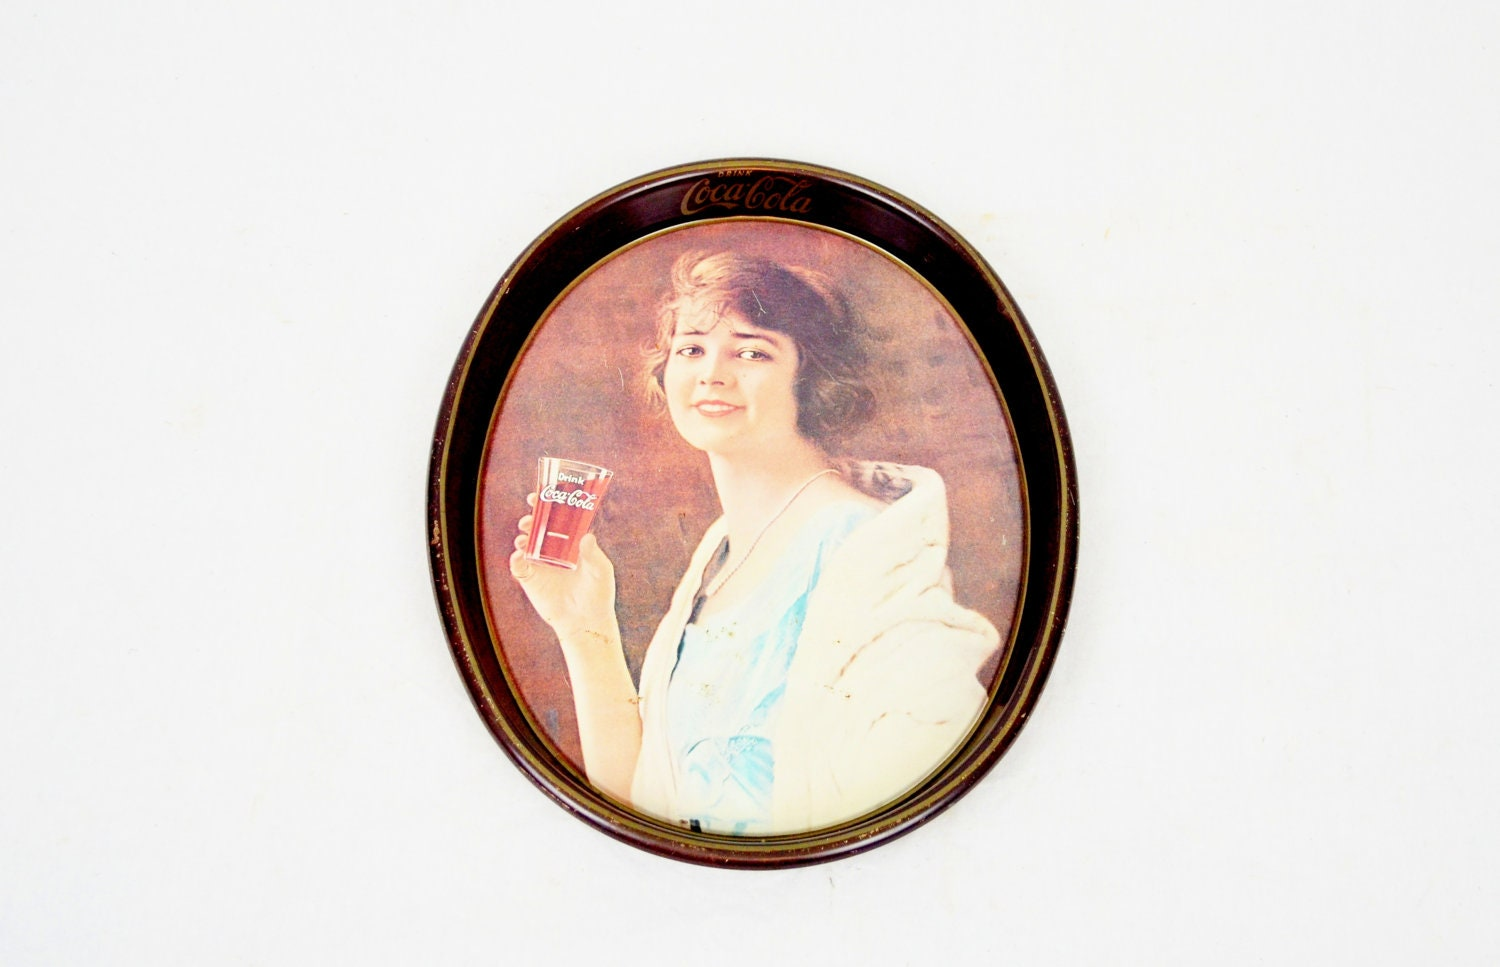 1973 Coca-Cola Tray With Girl Drinking Coke - LuccaBalesVintage